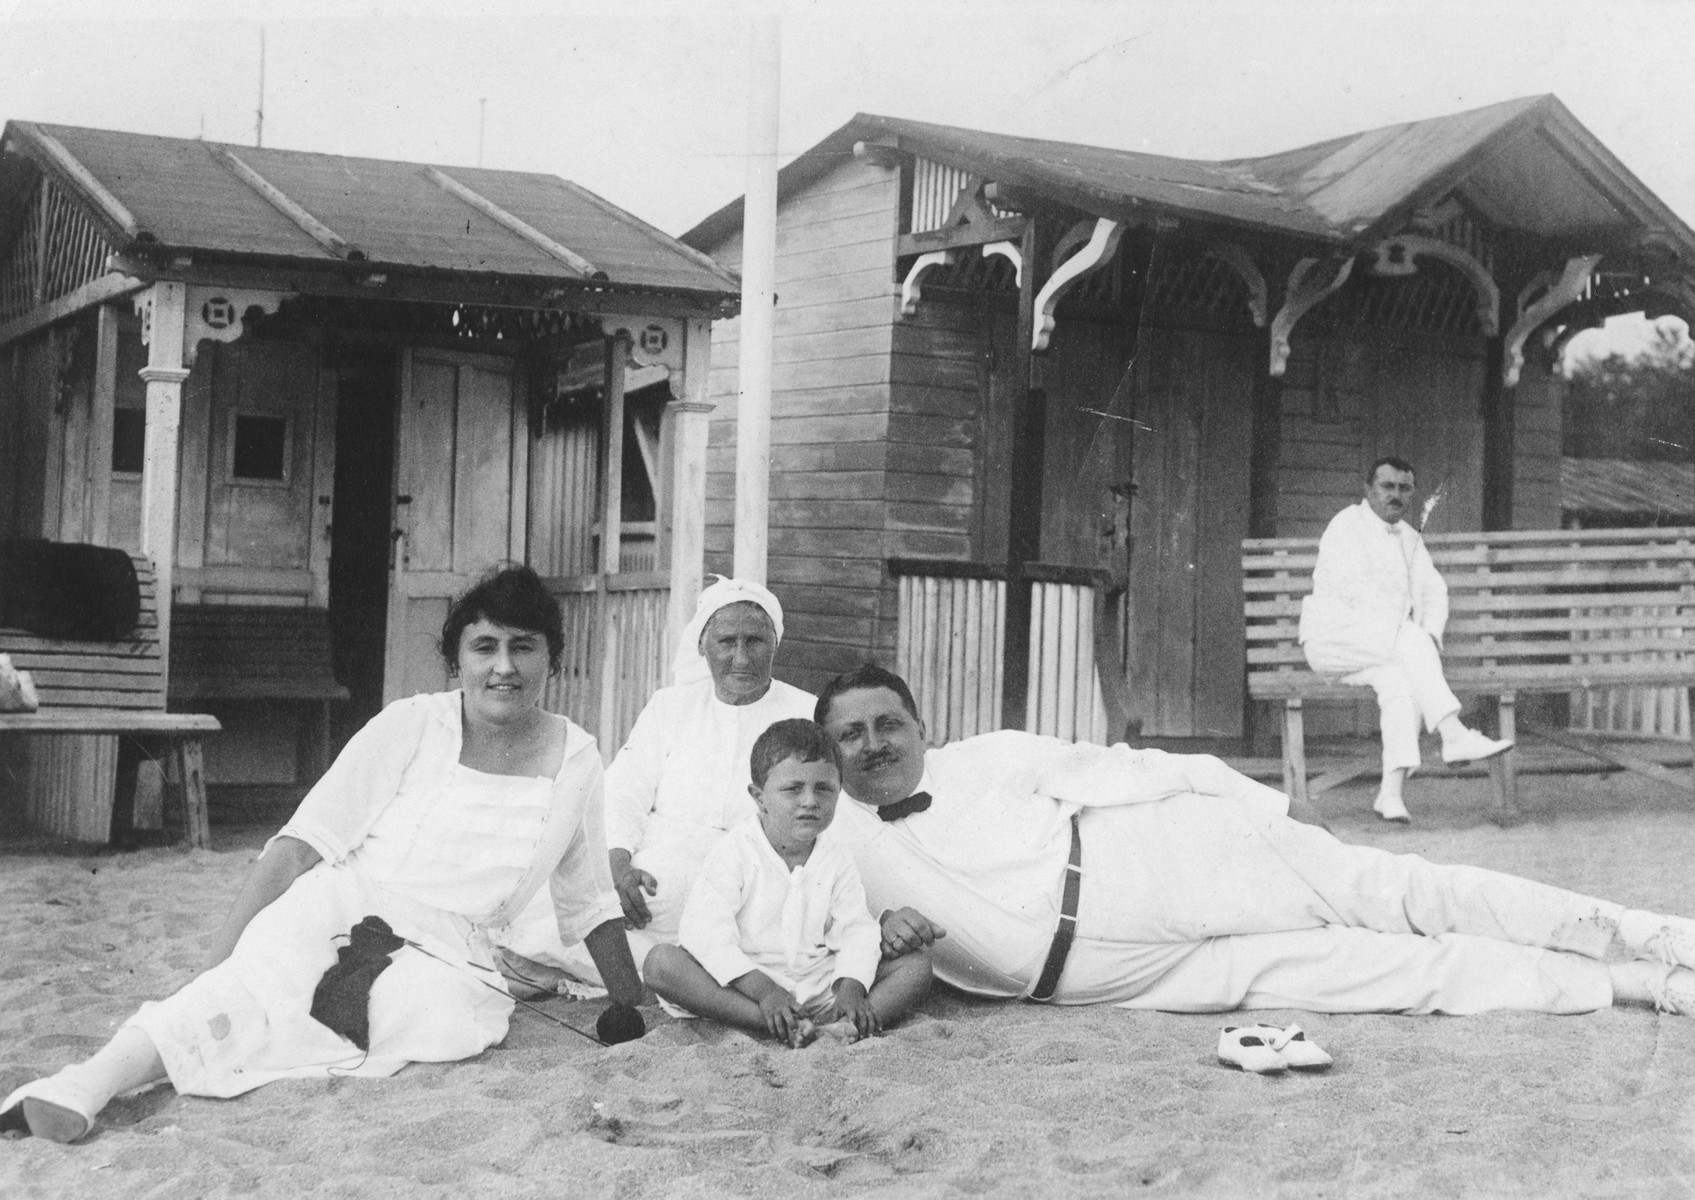 A Jewish family poses with their nurse on the beach at Tsin Tzo.  Pictured are Aaron and Betia Faingersch with their son Vladimir.